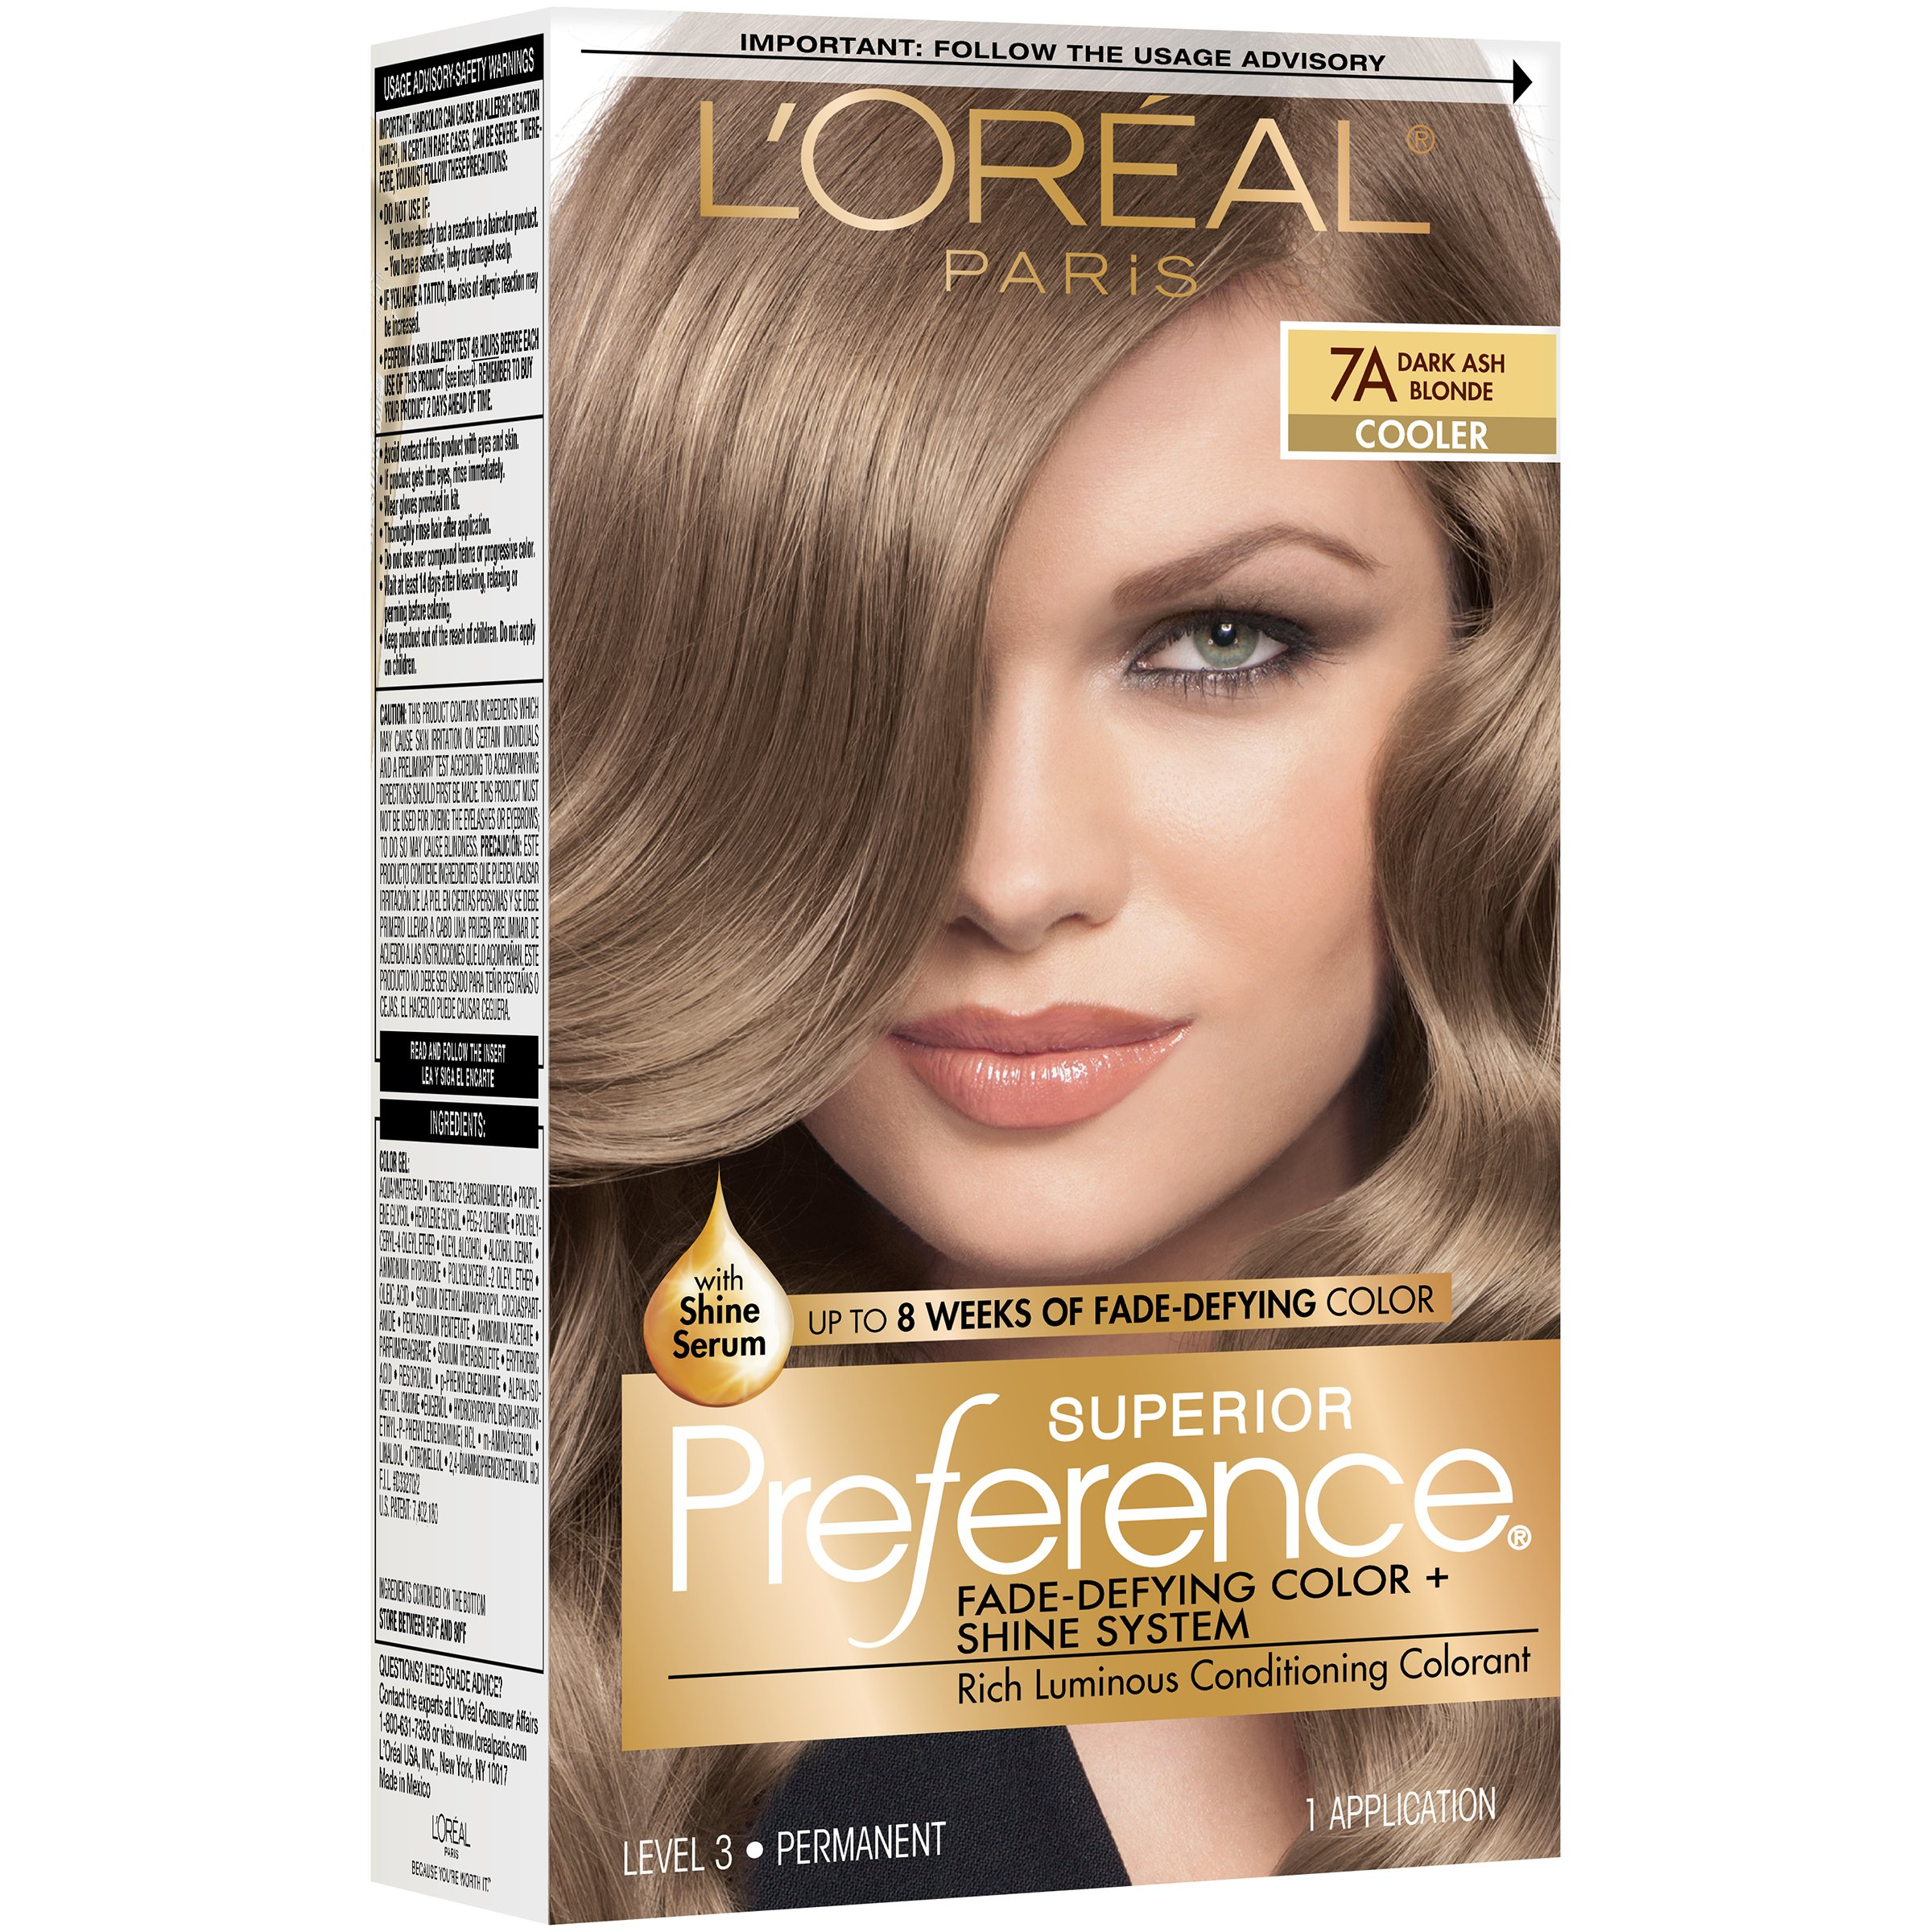 L Oreal Paris Superior Preference Permanent Hair Color 7a Dark Ash Blonde Shop Hair Color At H E B